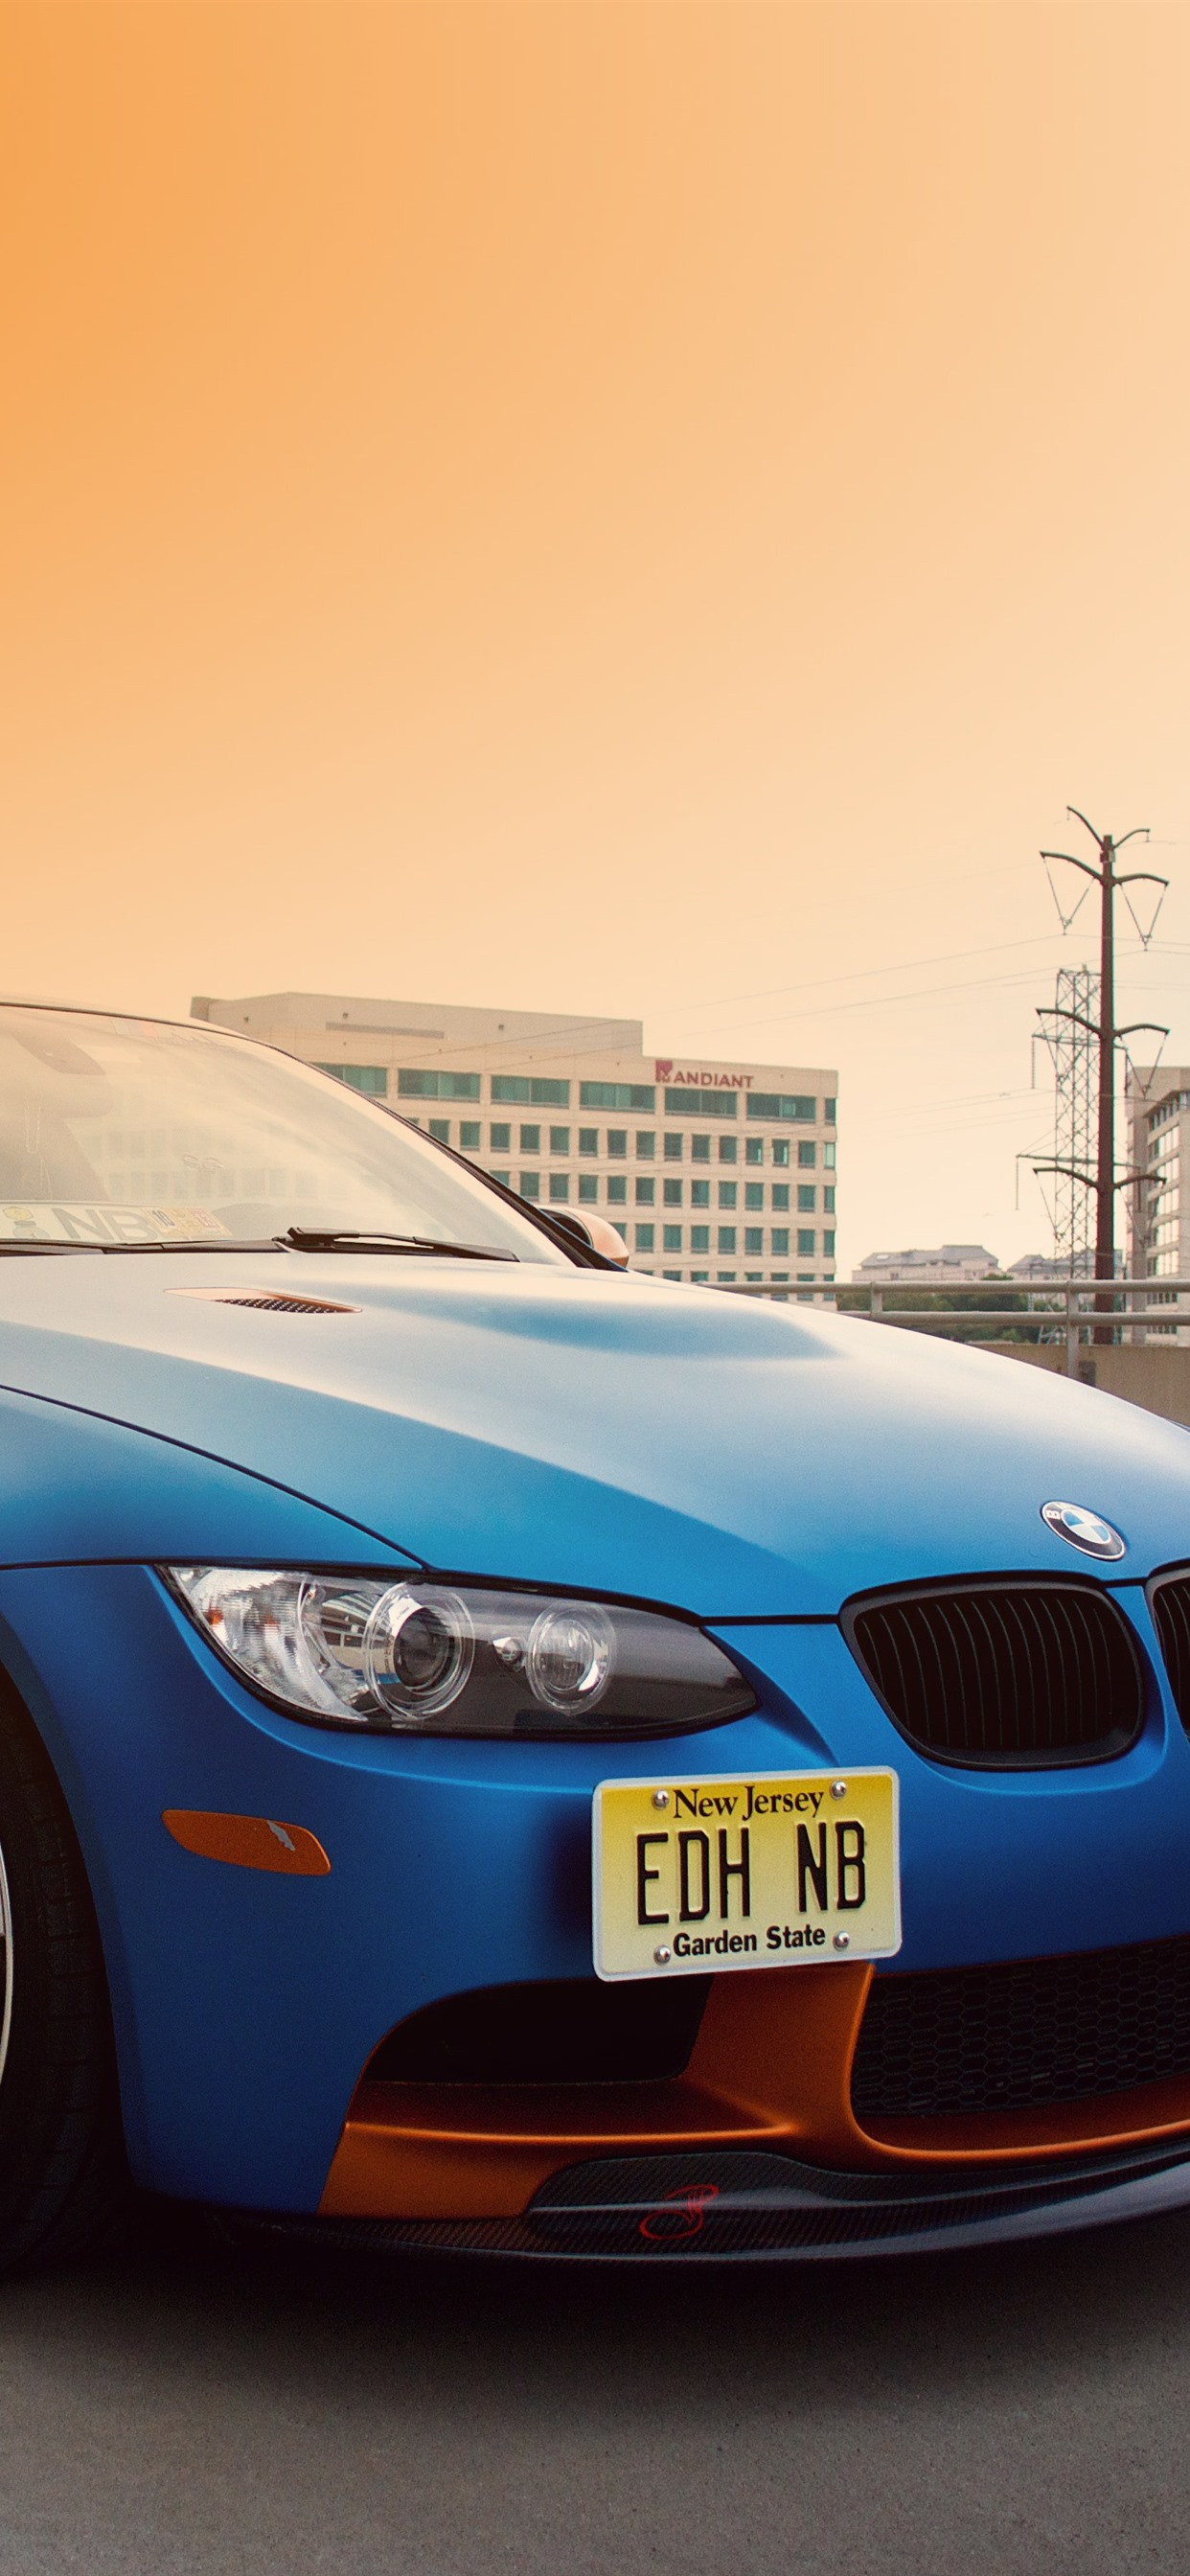 Wallpaper Bmw E92 M3 Blue Car City Road 3840x2160 Uhd 4k